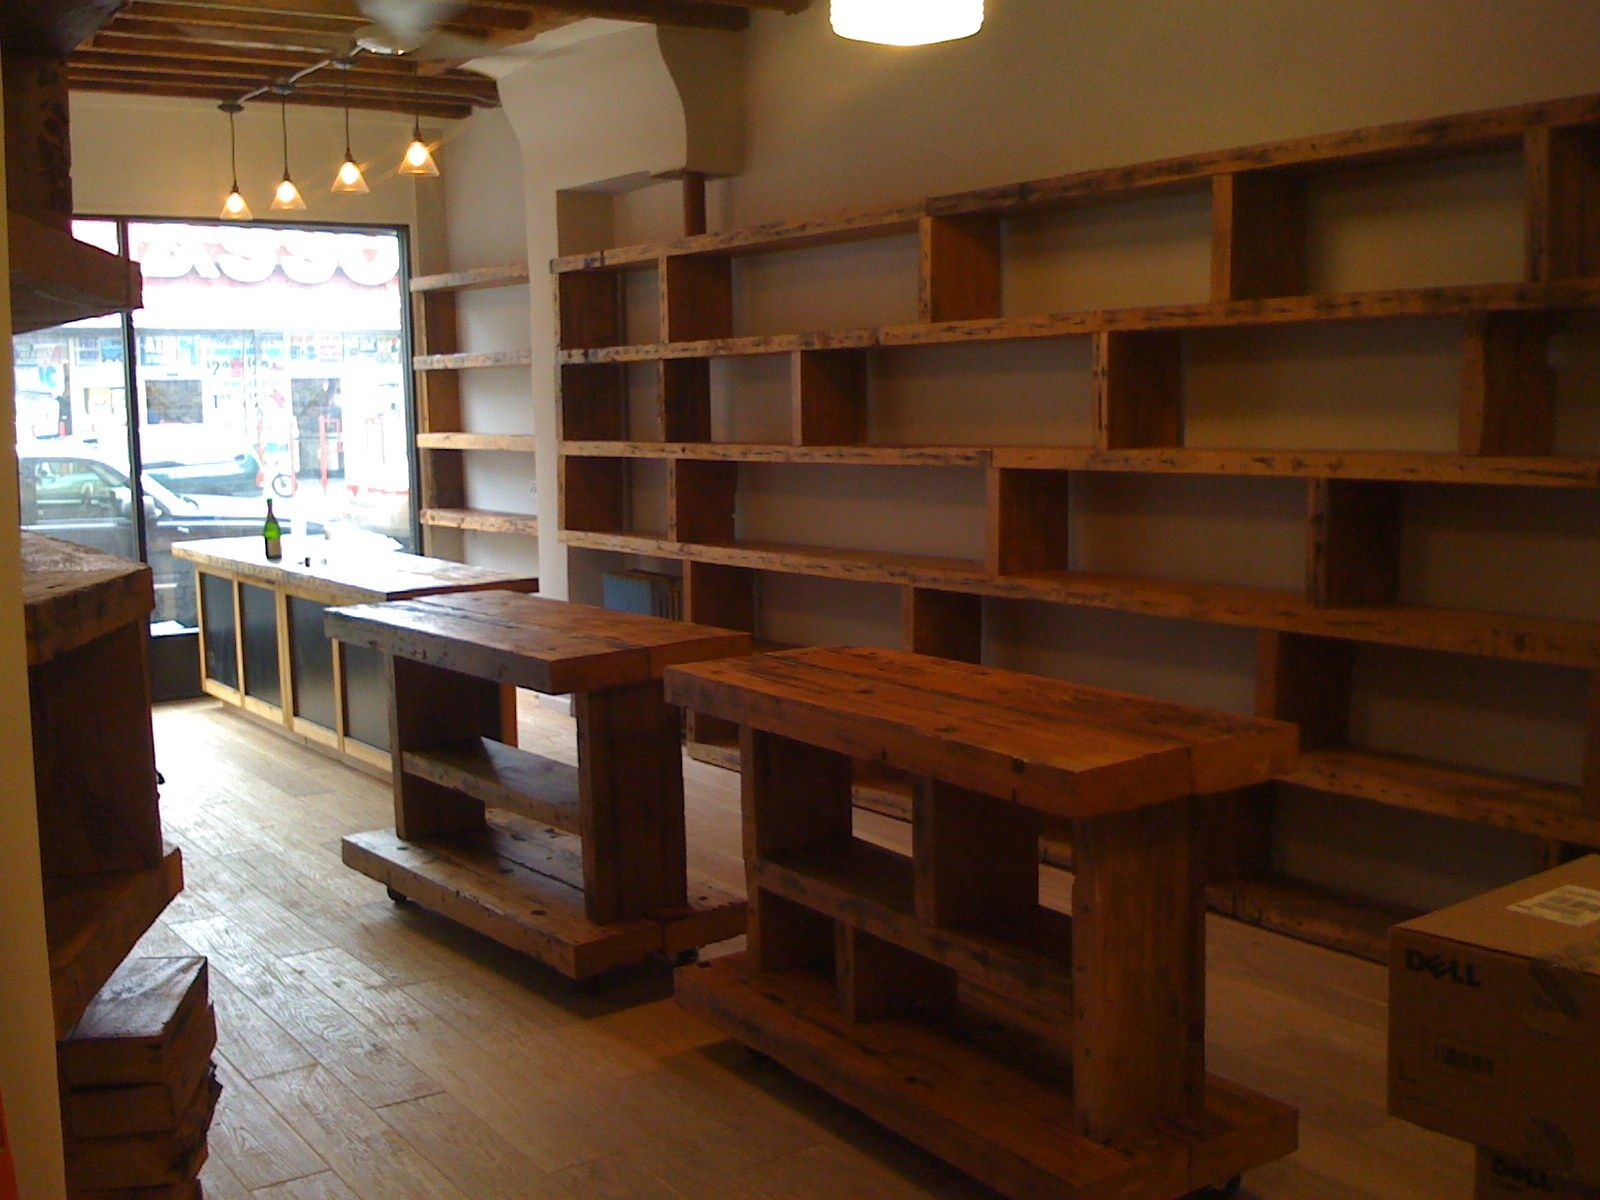 Wood Shelving Up The Wall Pos Counter Reclaimed Wood Top Retail